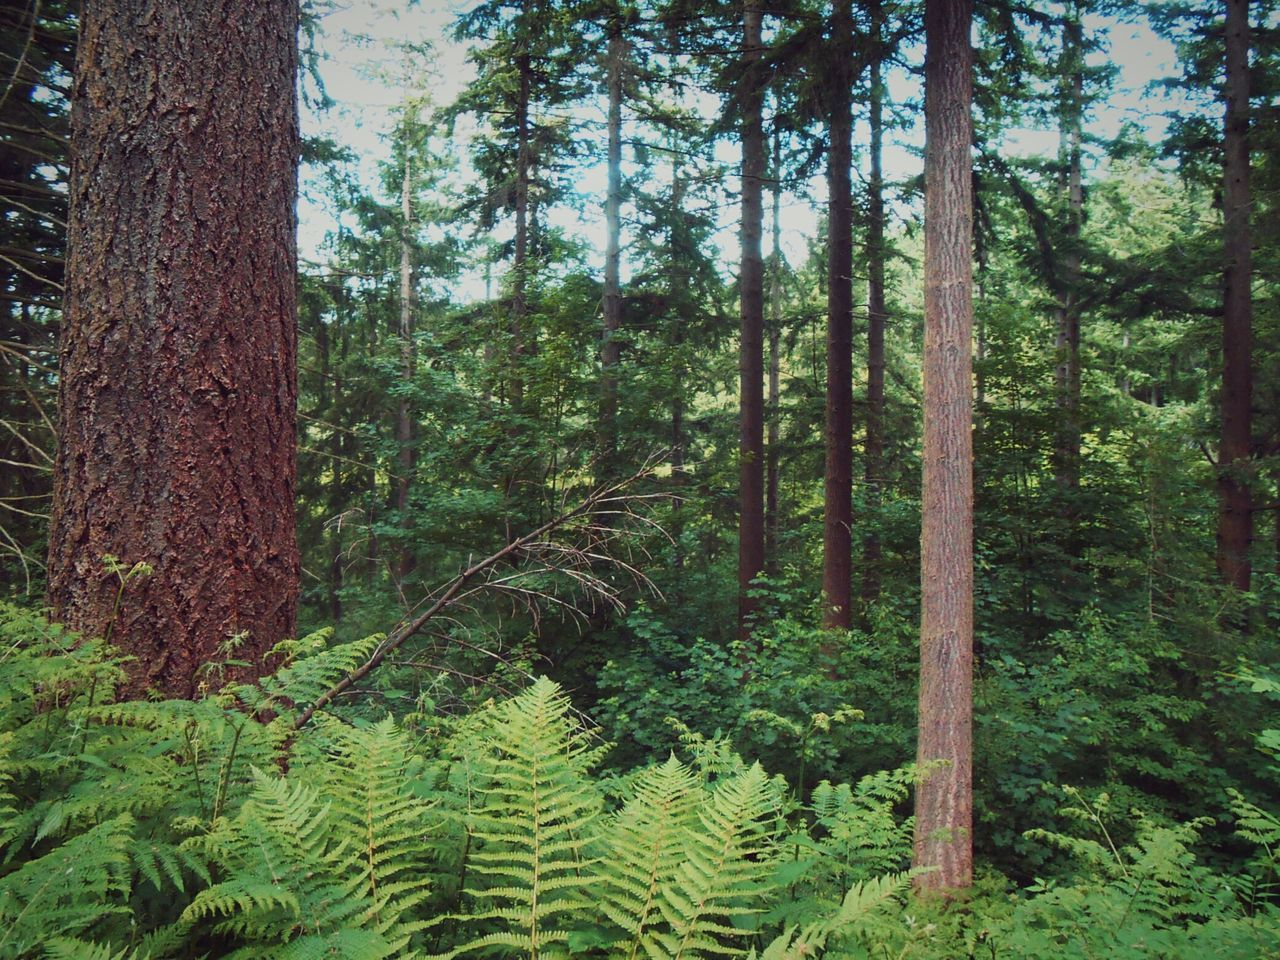 Trees grow taller together. .. Forest Woods Trees Conifers Wales Welshpool Ferns Лес папортник деревья